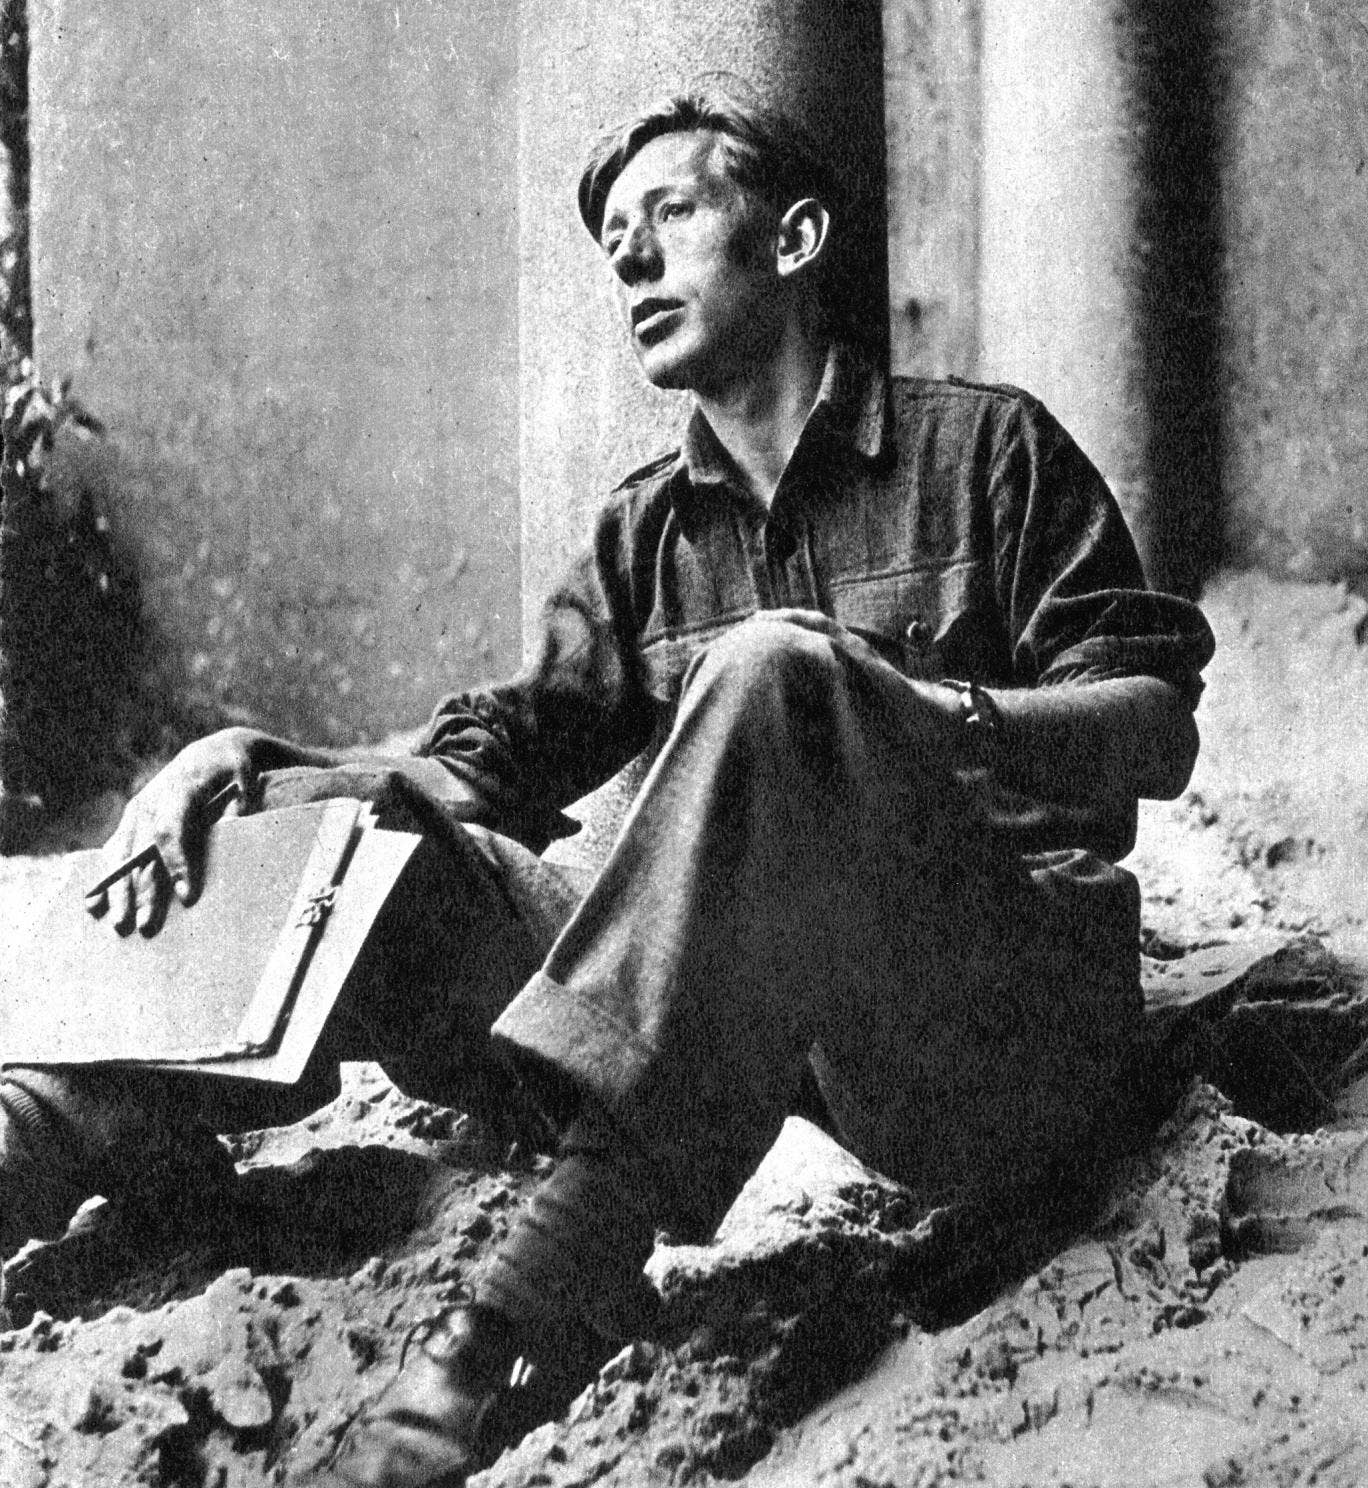 Laurie Lee, author of 'Cider with Rosie' (1959)